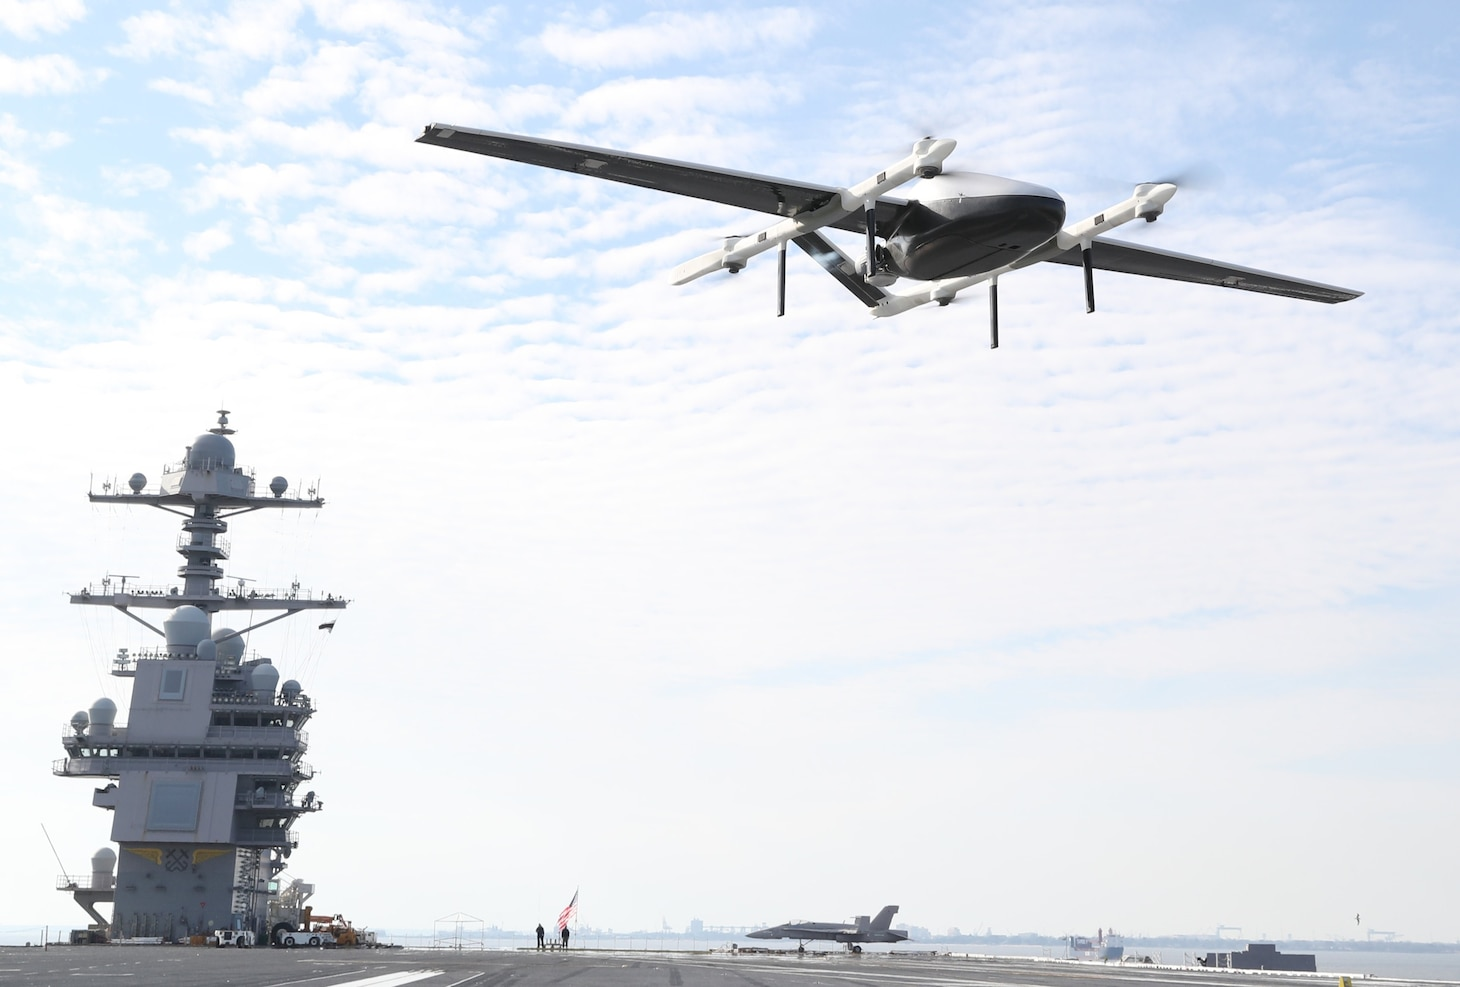 Unmanned Air System (UAS) prototype, called Blue Water UAS, approaches to deliver cargo on USS Gerald R. Ford's (CVN 78) flight deck